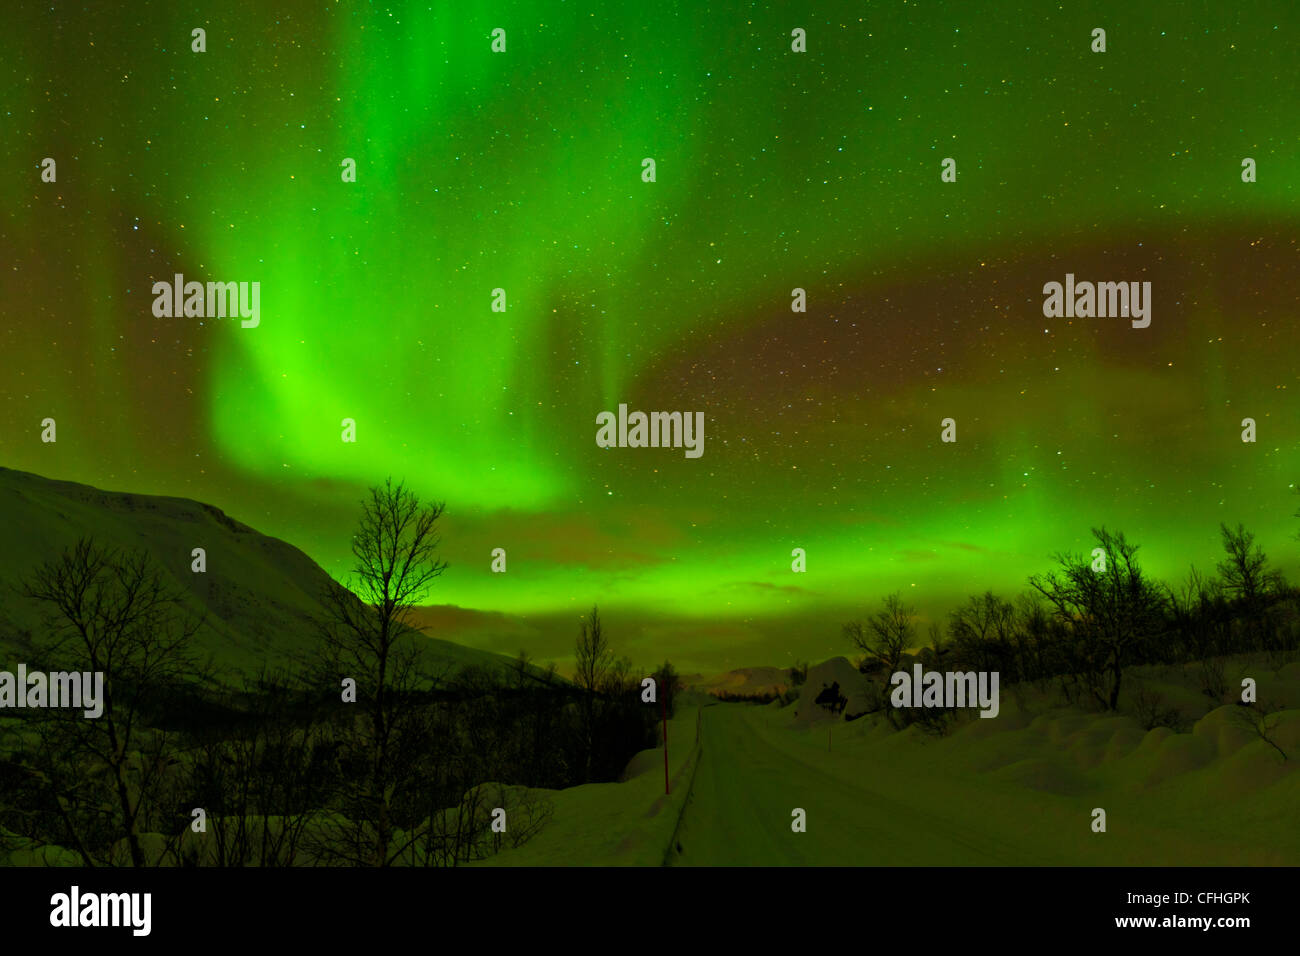 Aurora borealis or northern lights seen over a snow covered road, Troms, North Norway, Europe - Stock Image